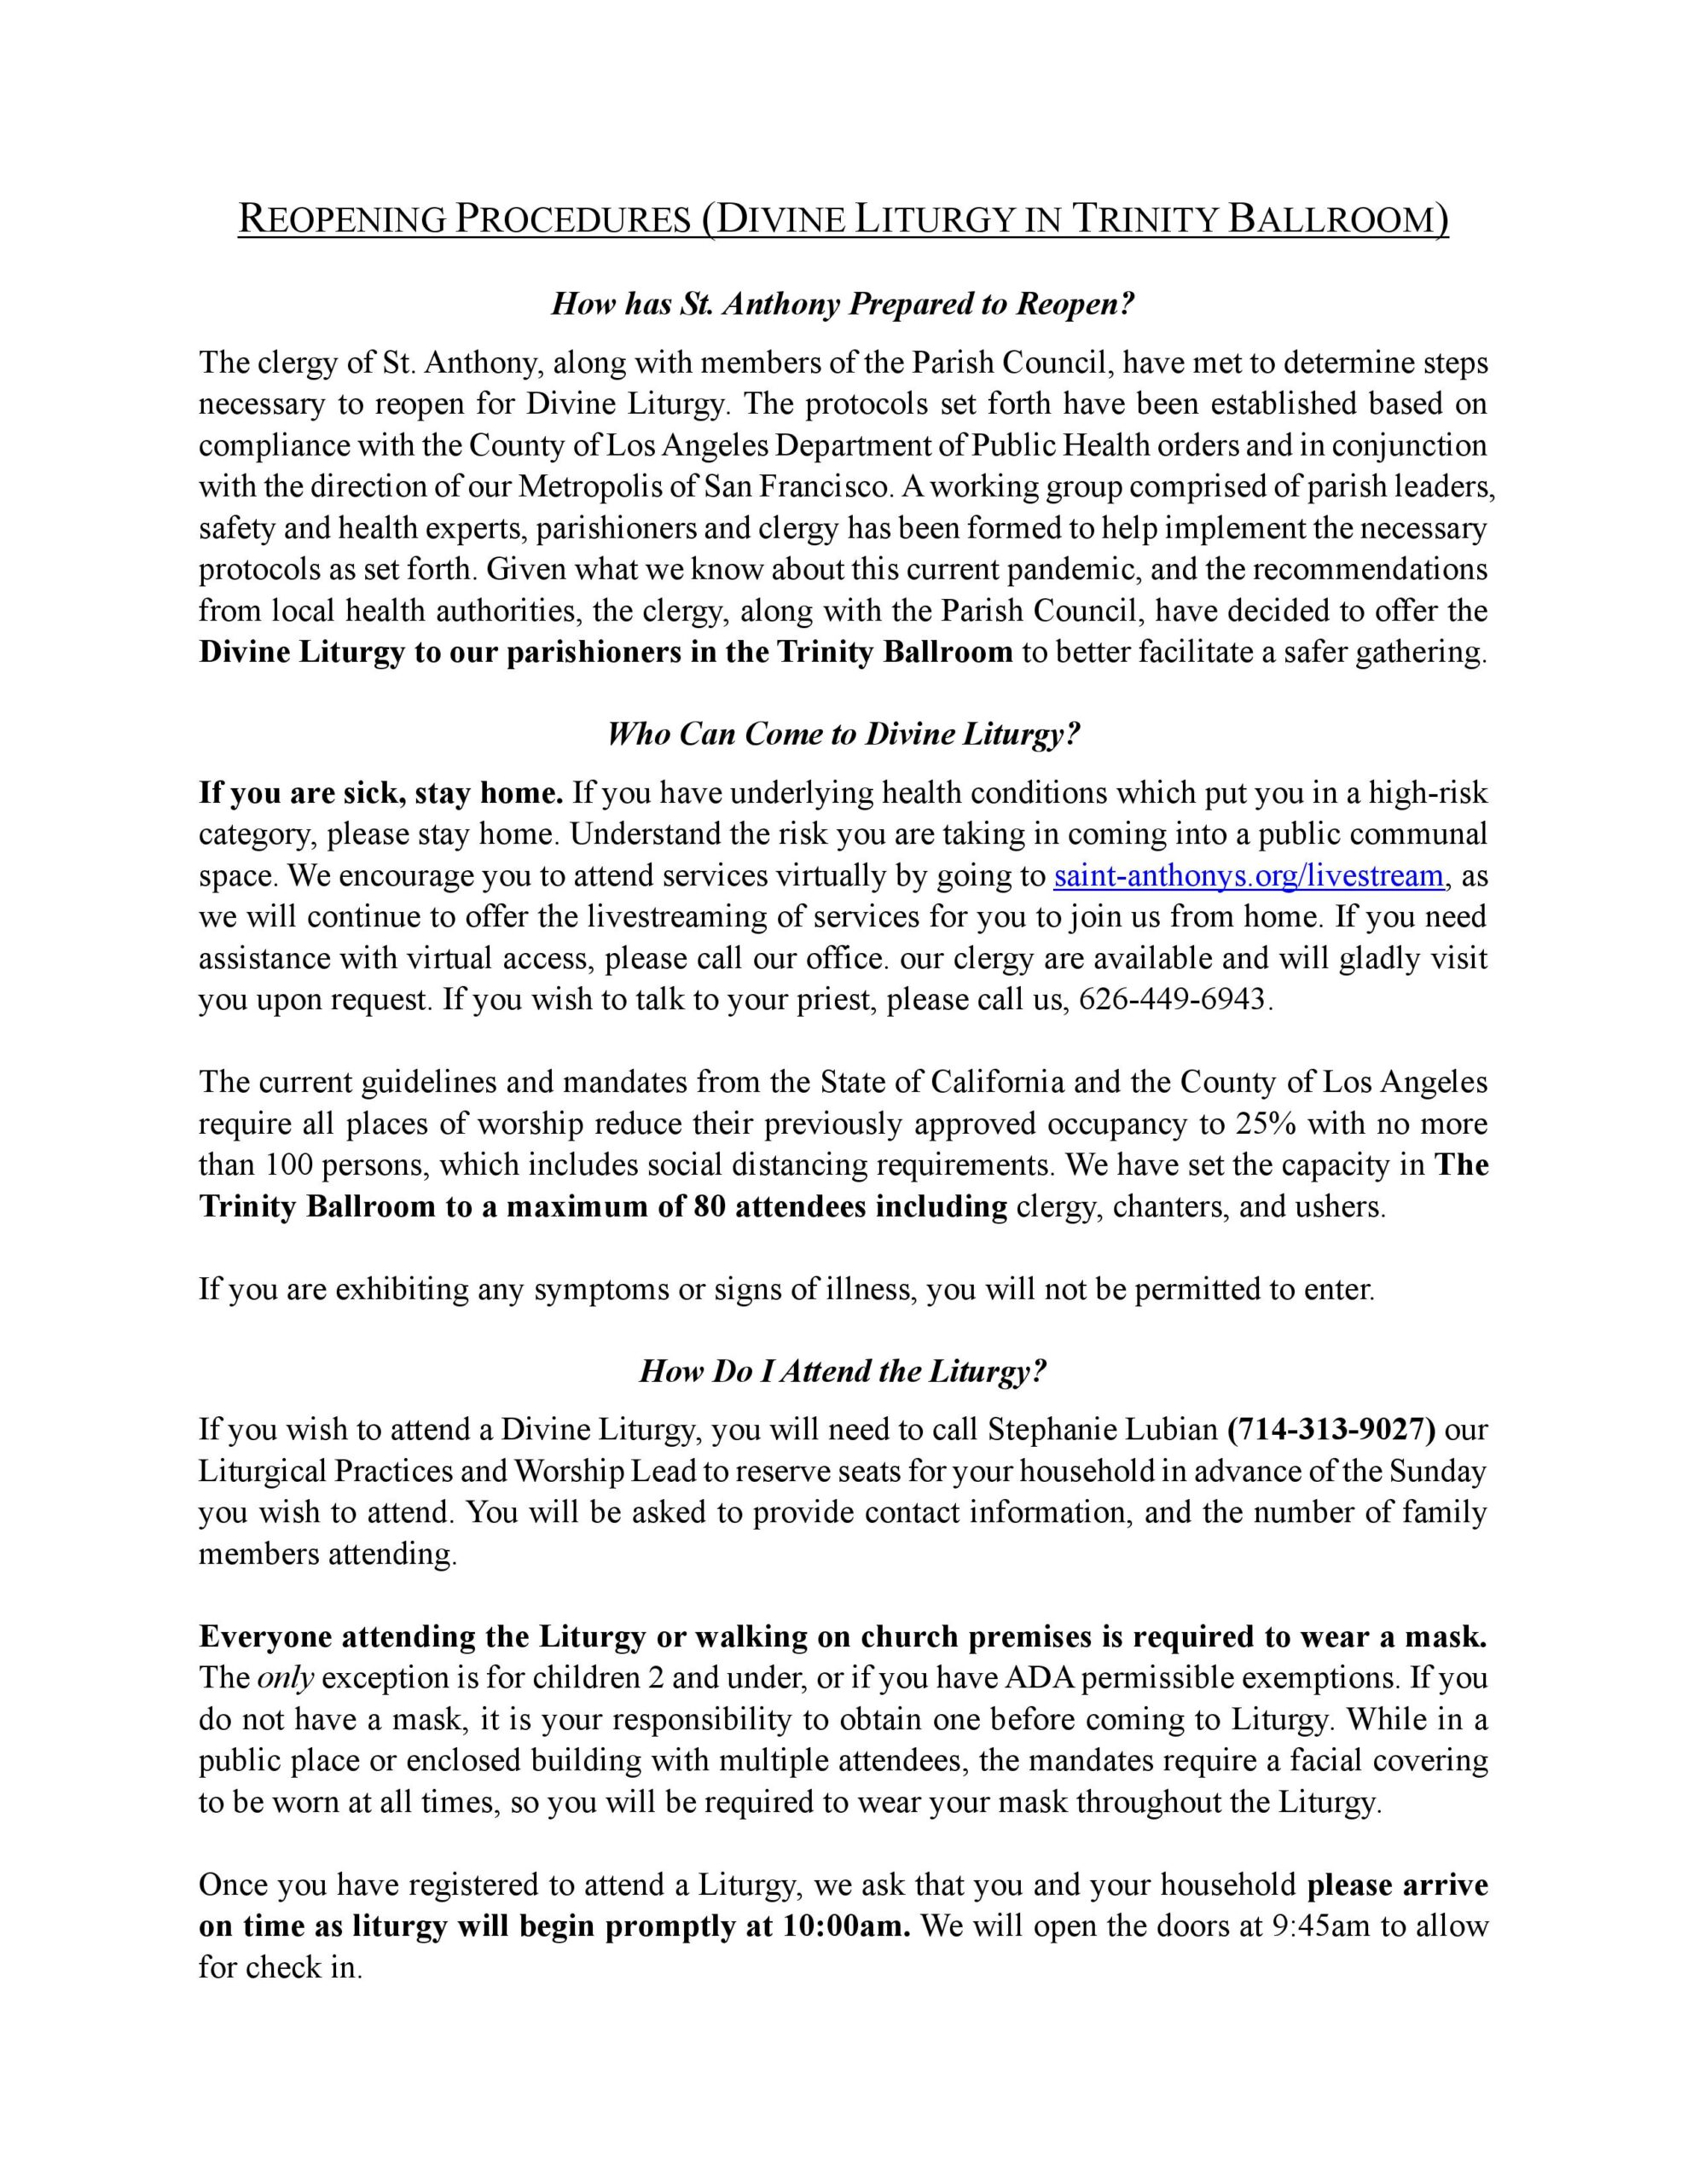 reopening letter edited 6.11.20-page-002